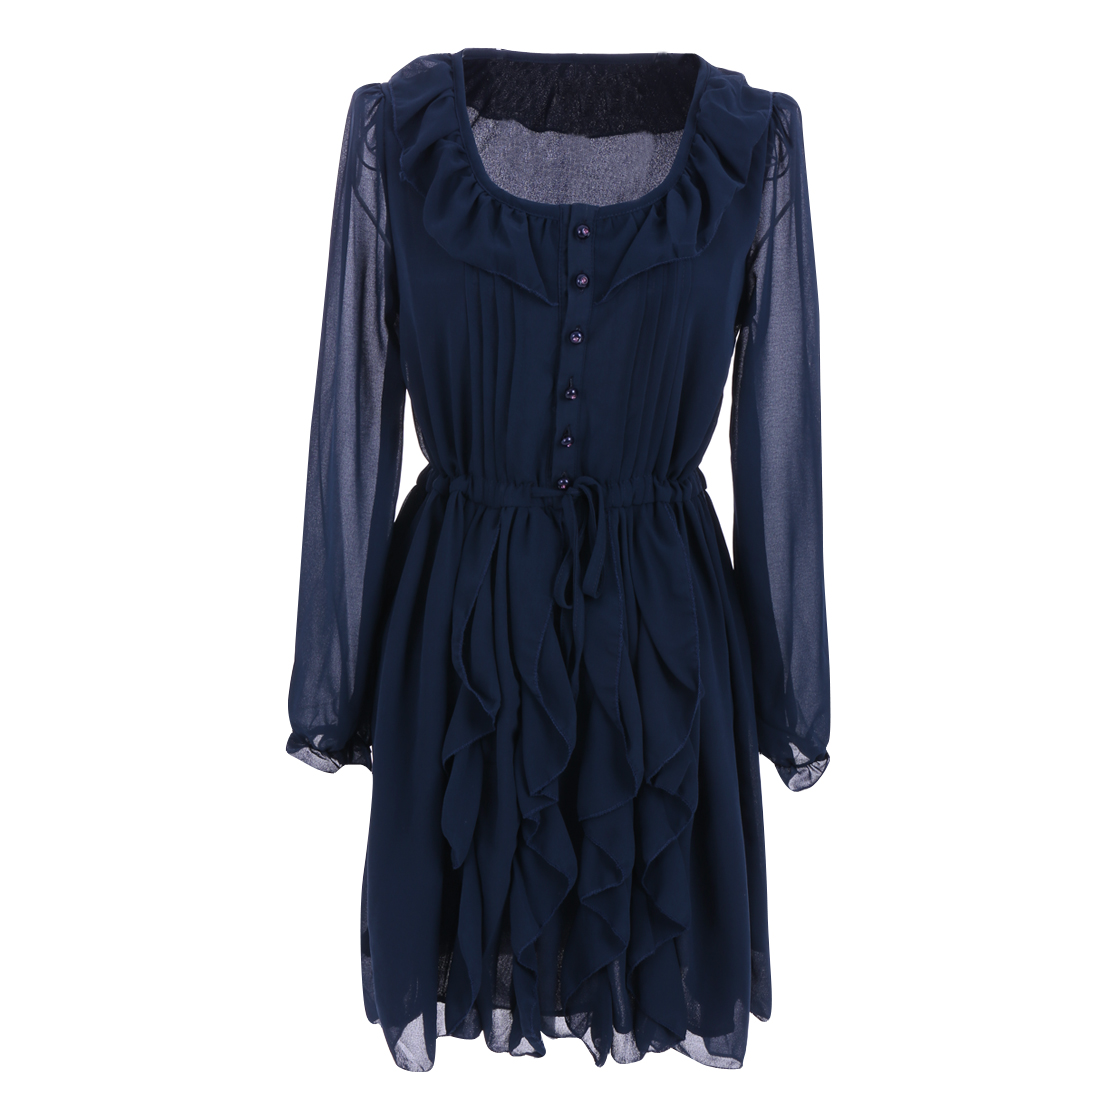 Women Round Neck Long Sleeve Elastic Cuffs Dress Navy Blue XS